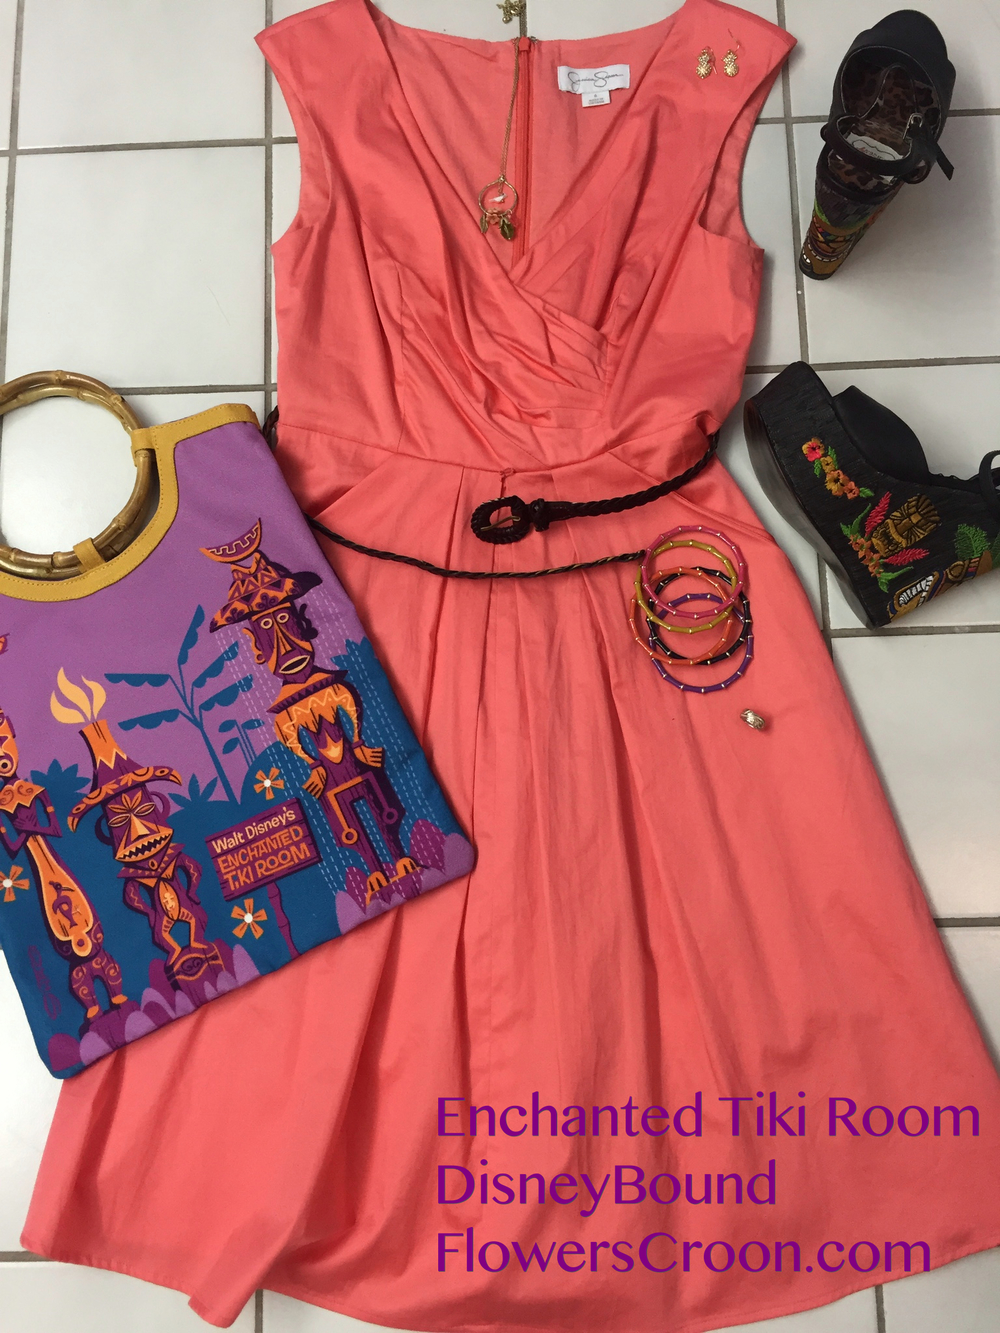 enchanted-tiki-room-disney-bound.jpg